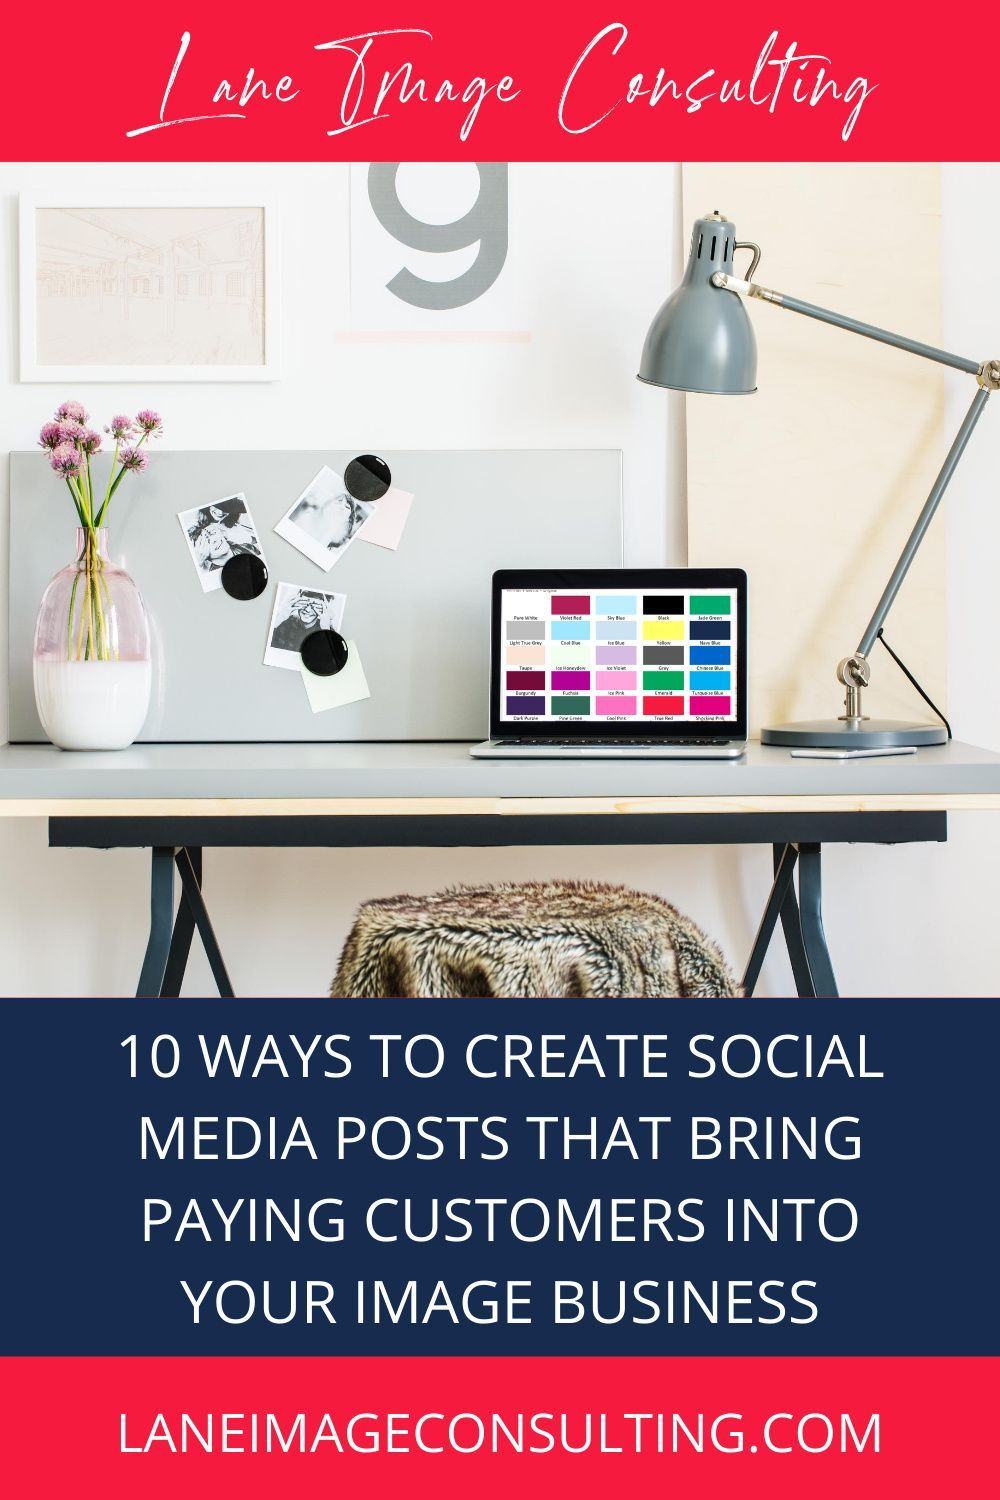 Do you struggle to come up with ideas for social media posts to promote your image or styling business? Check out this video for my 10 top tips to create social media posts that convert leads into paying customers. #socialmediaideas #imageconsultant #imageconsultanttipsbusiness